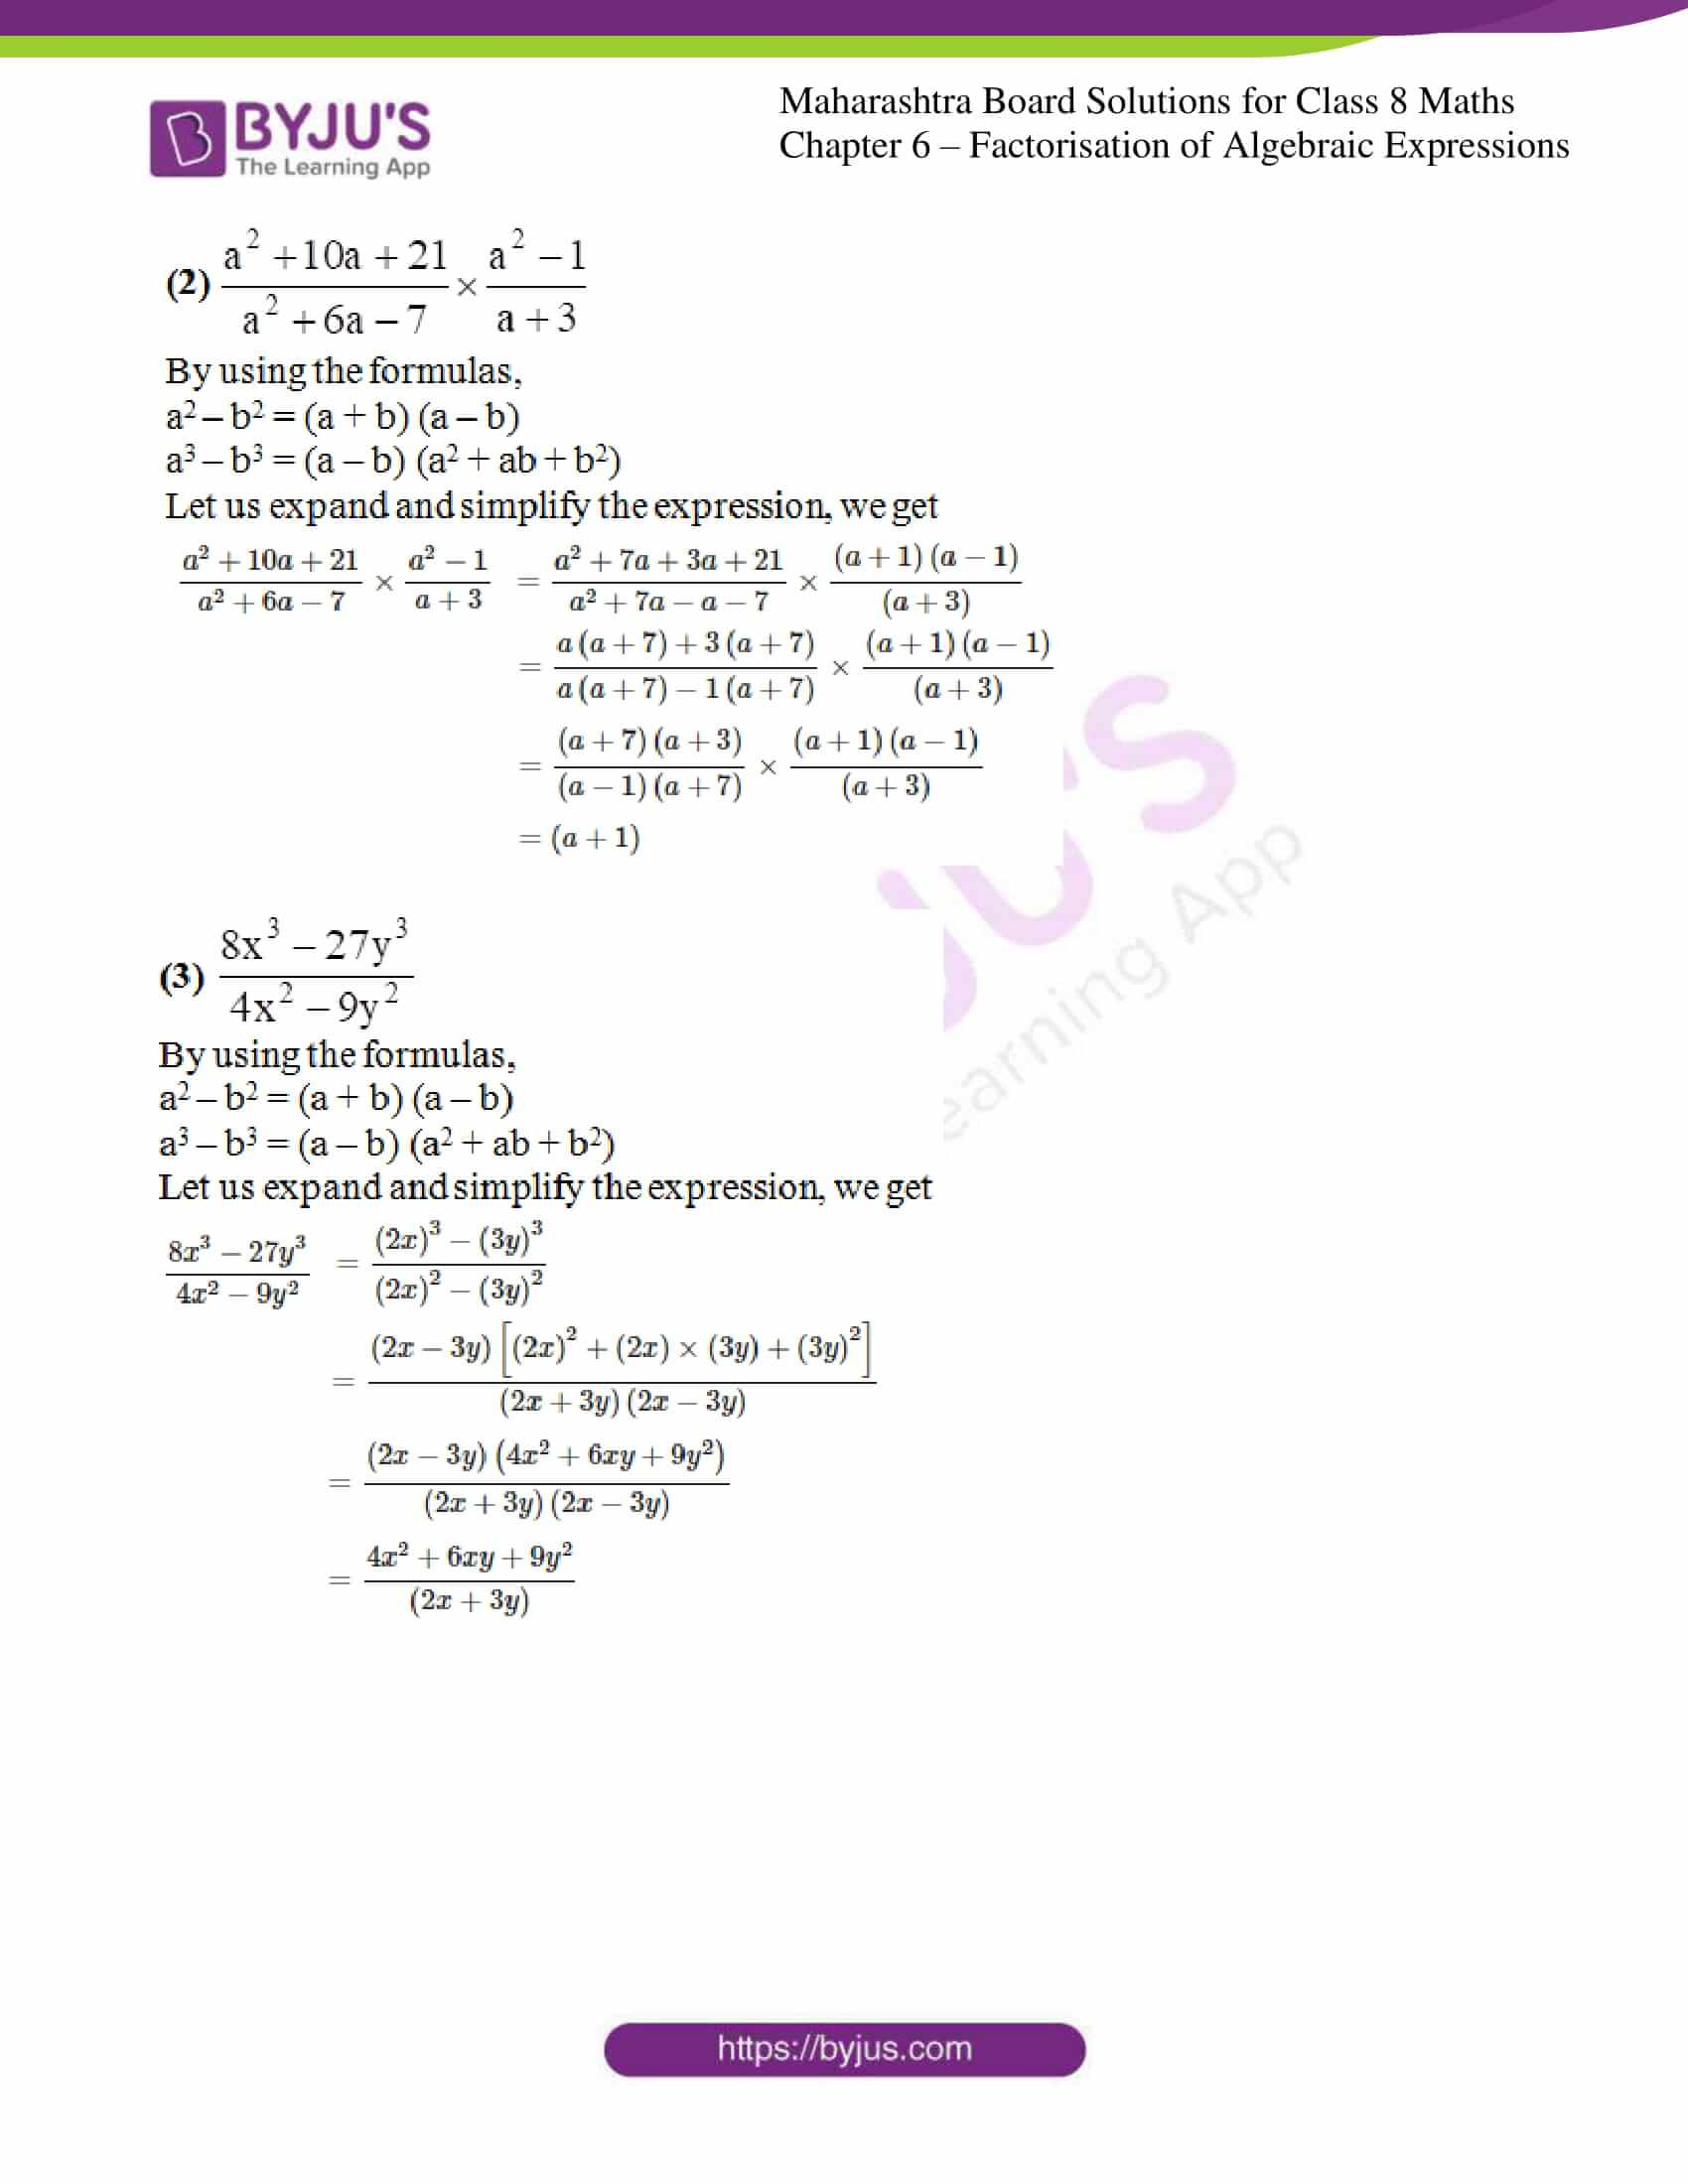 msbshse sol for class 8 maths chapter 6 13